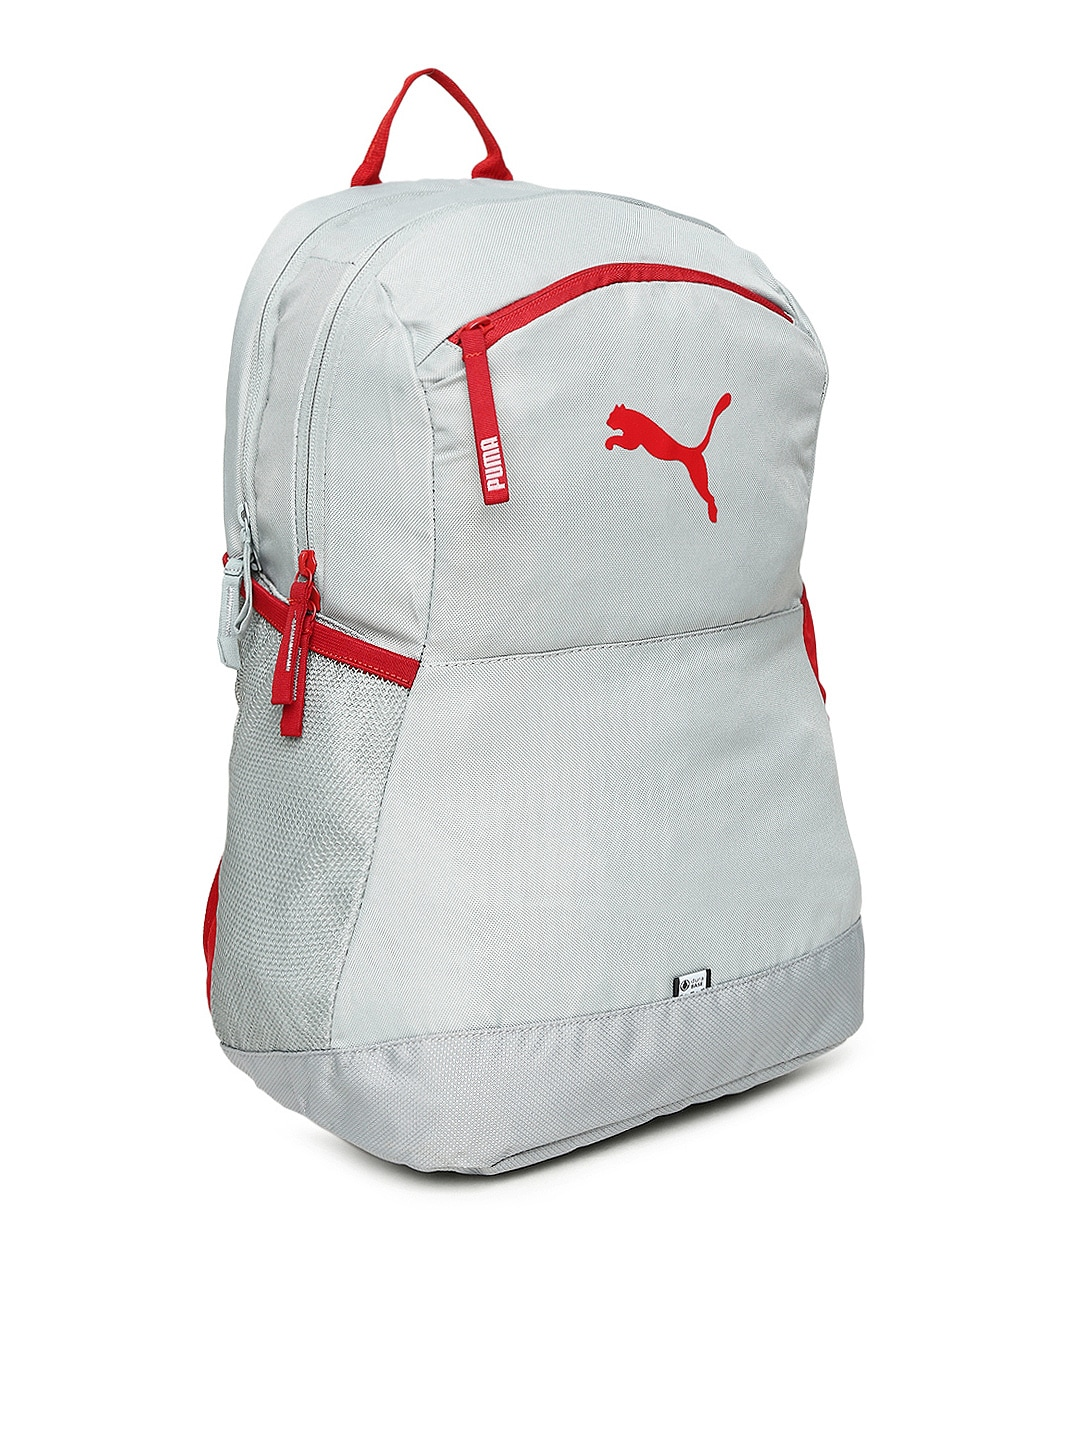 puma unisex beige & red recyclable backpack